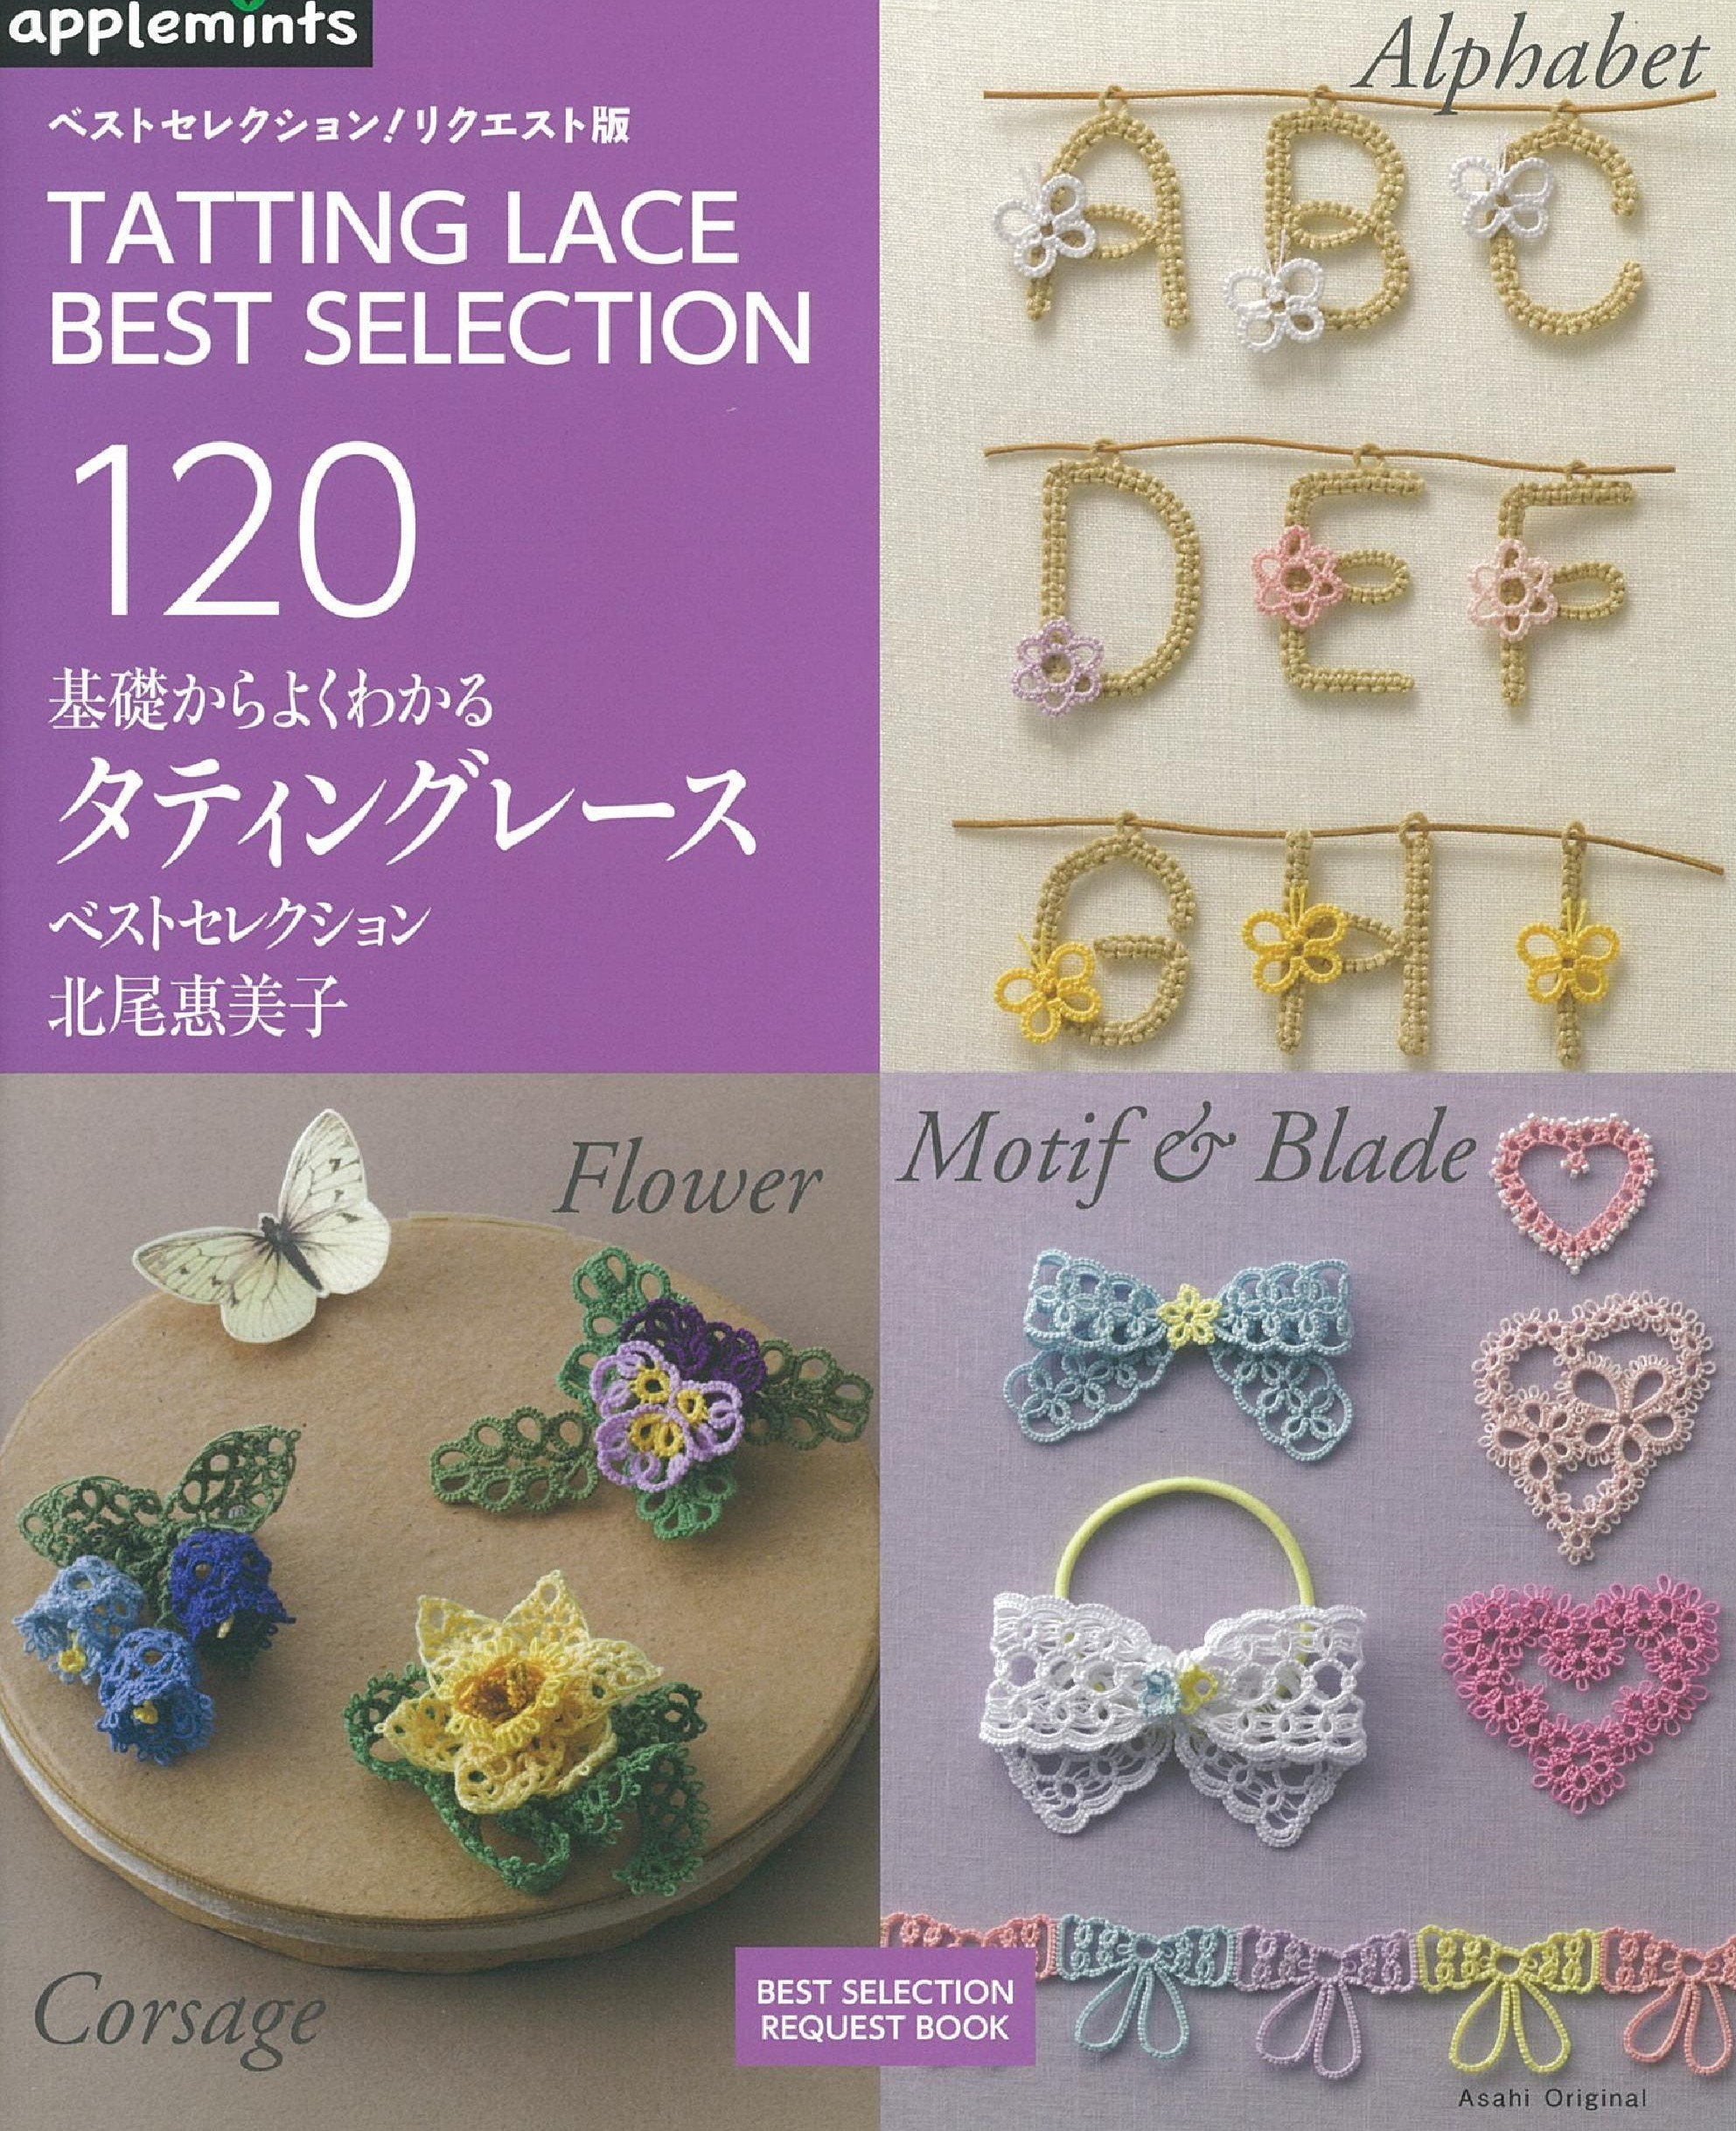 Best Selection Tatting from request version basis